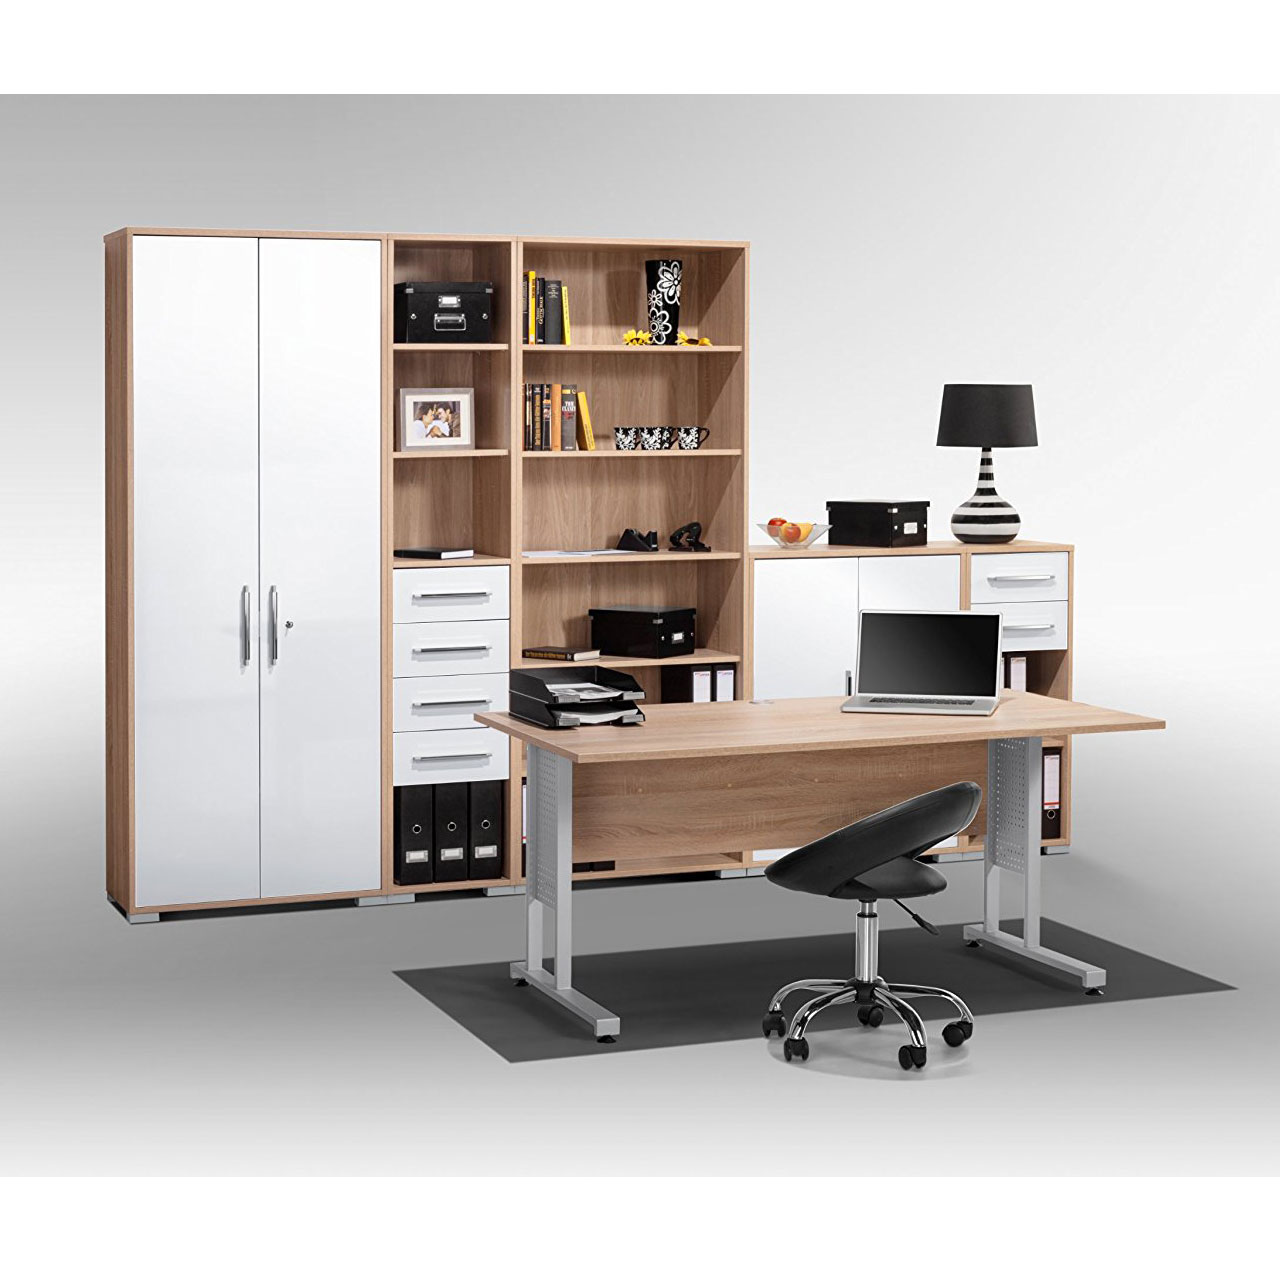 maja b roprogramm system 1200 sonoma eiche wei hochglanz. Black Bedroom Furniture Sets. Home Design Ideas